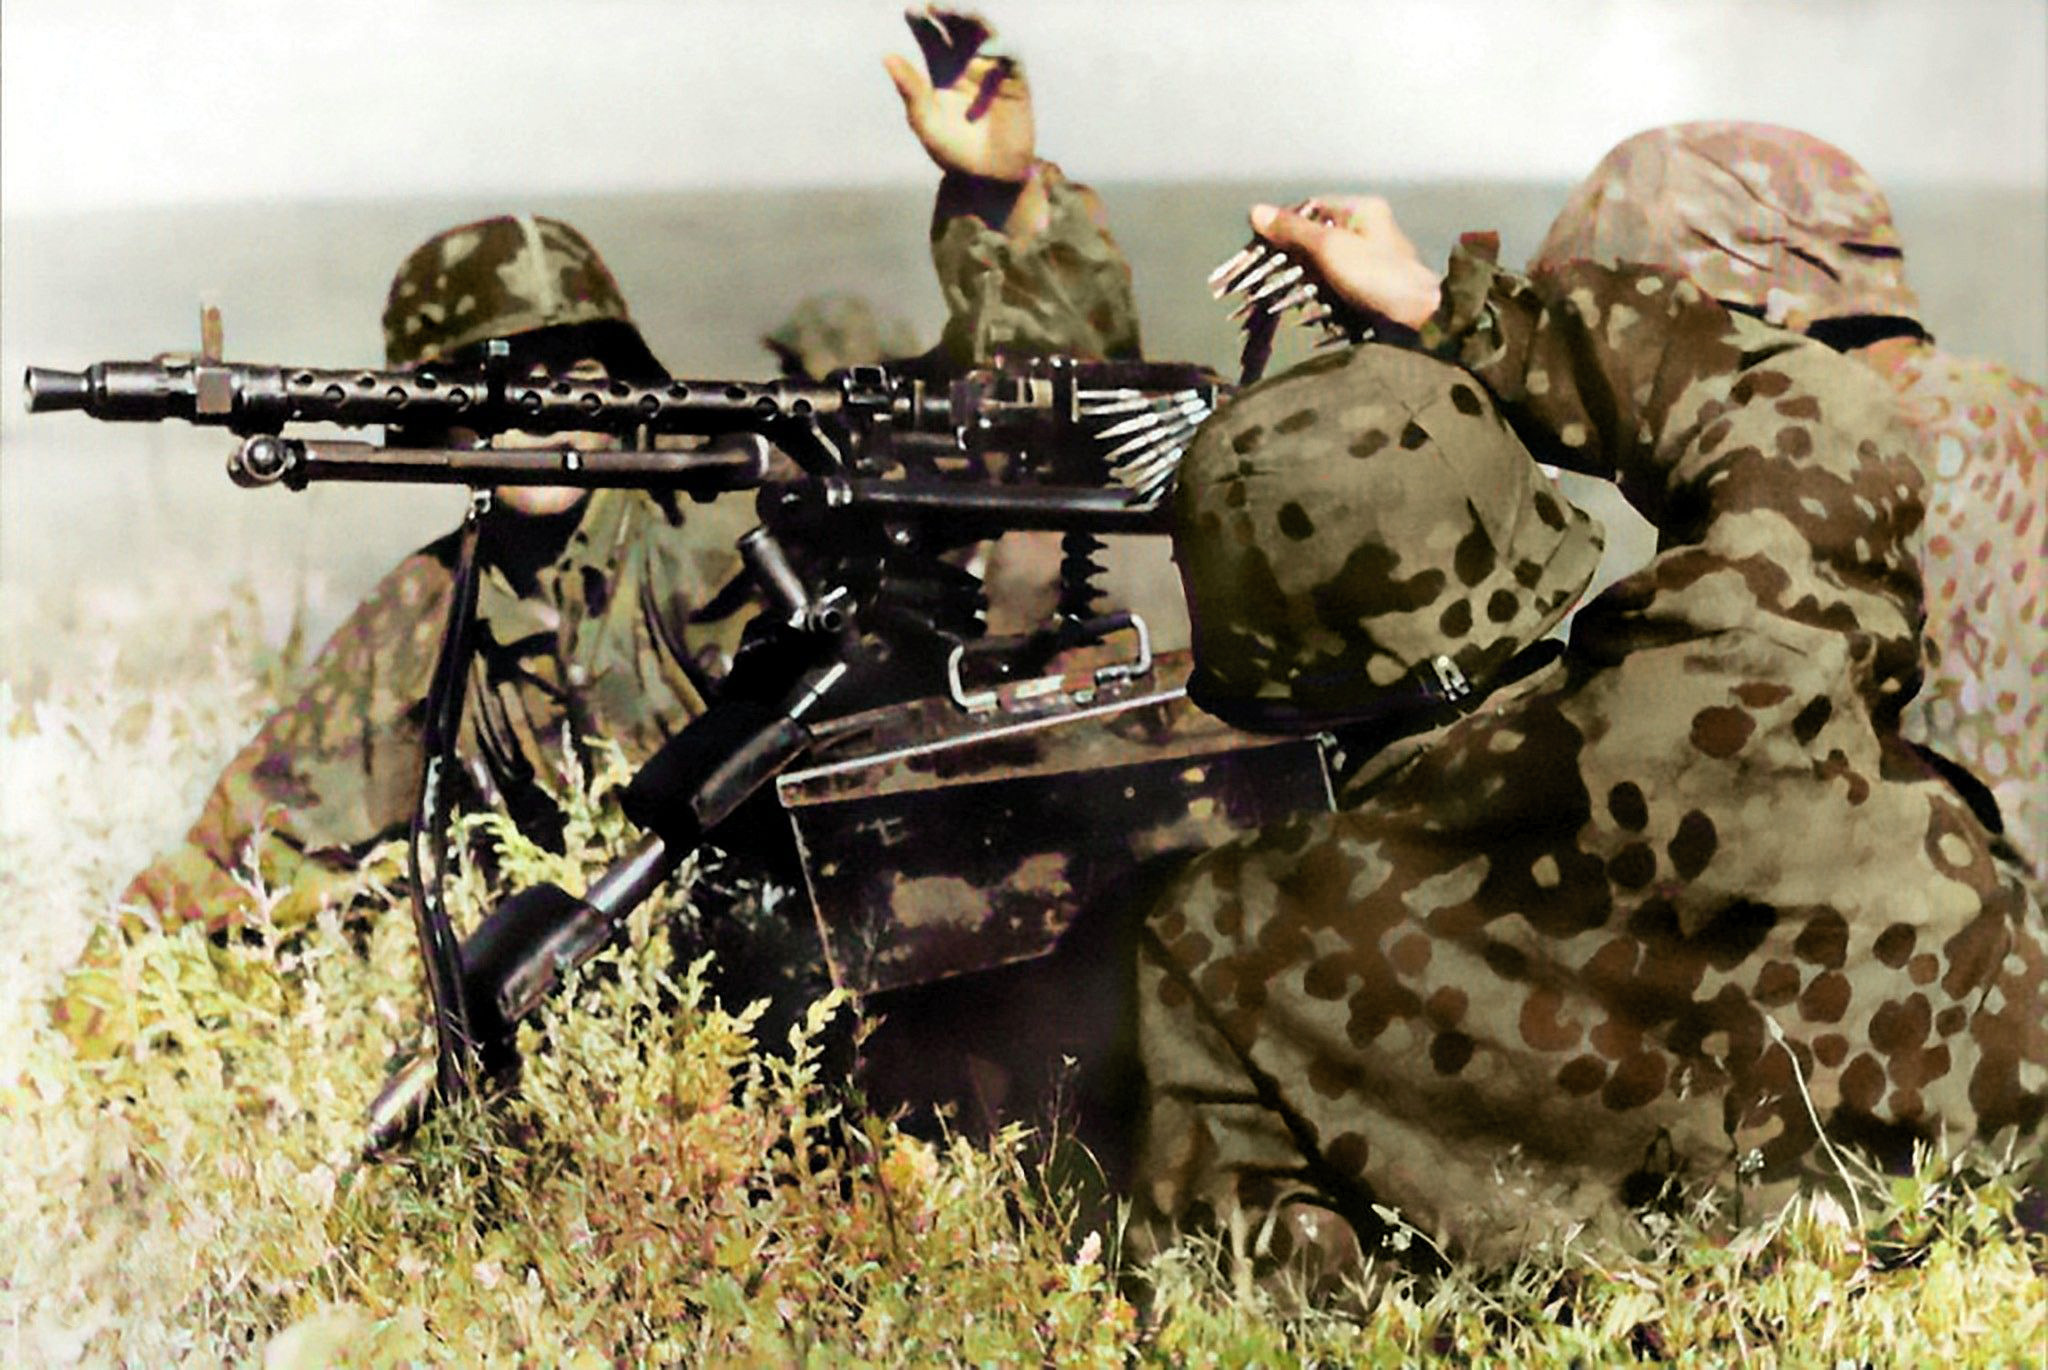 Waffen-SS with MG34 on tripod showing camouflage uniforms out in the field